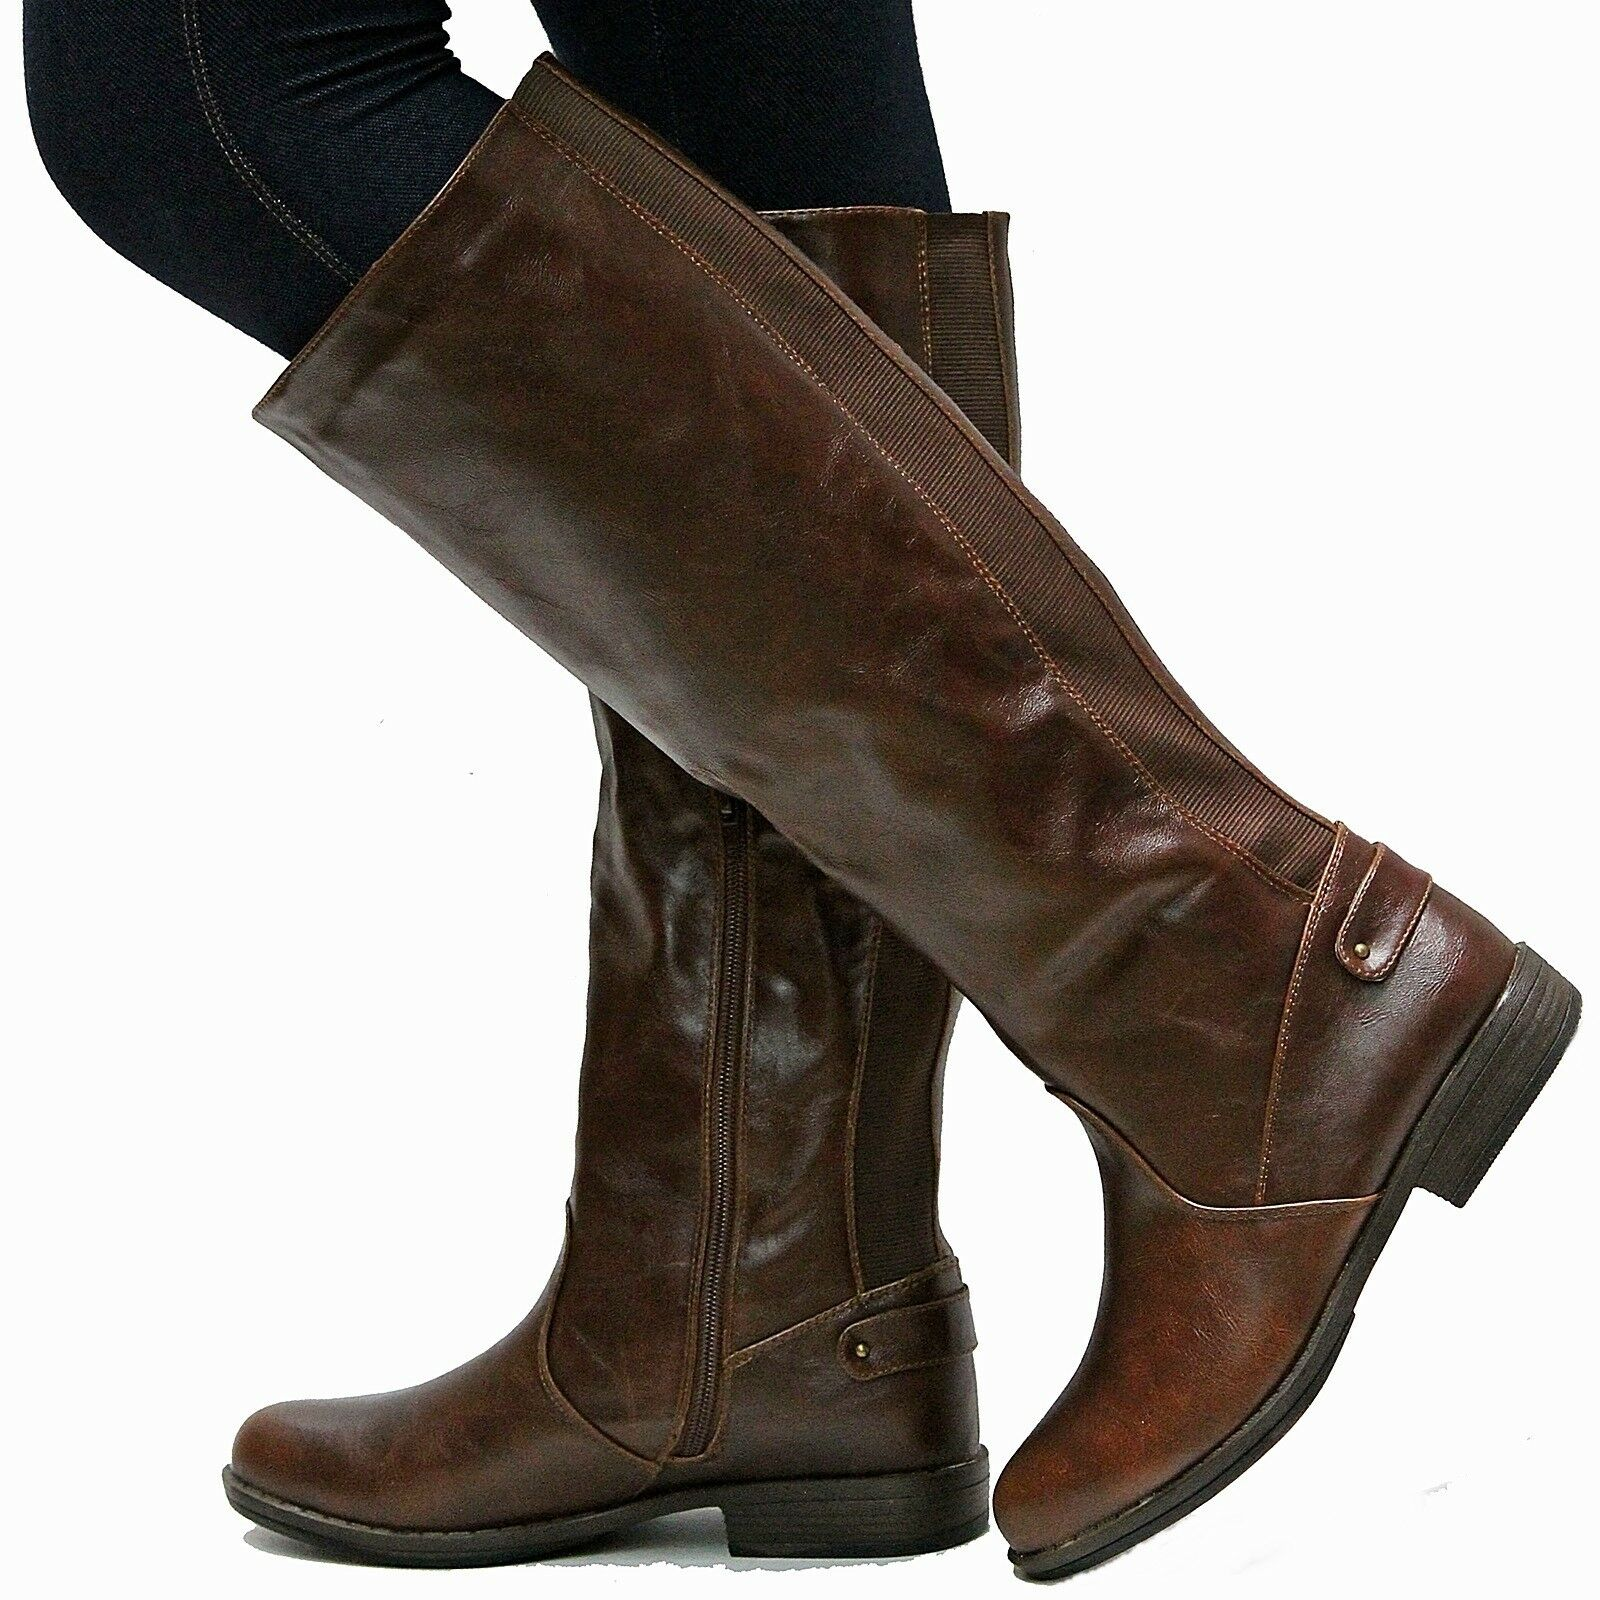 Western style fashion boots 27